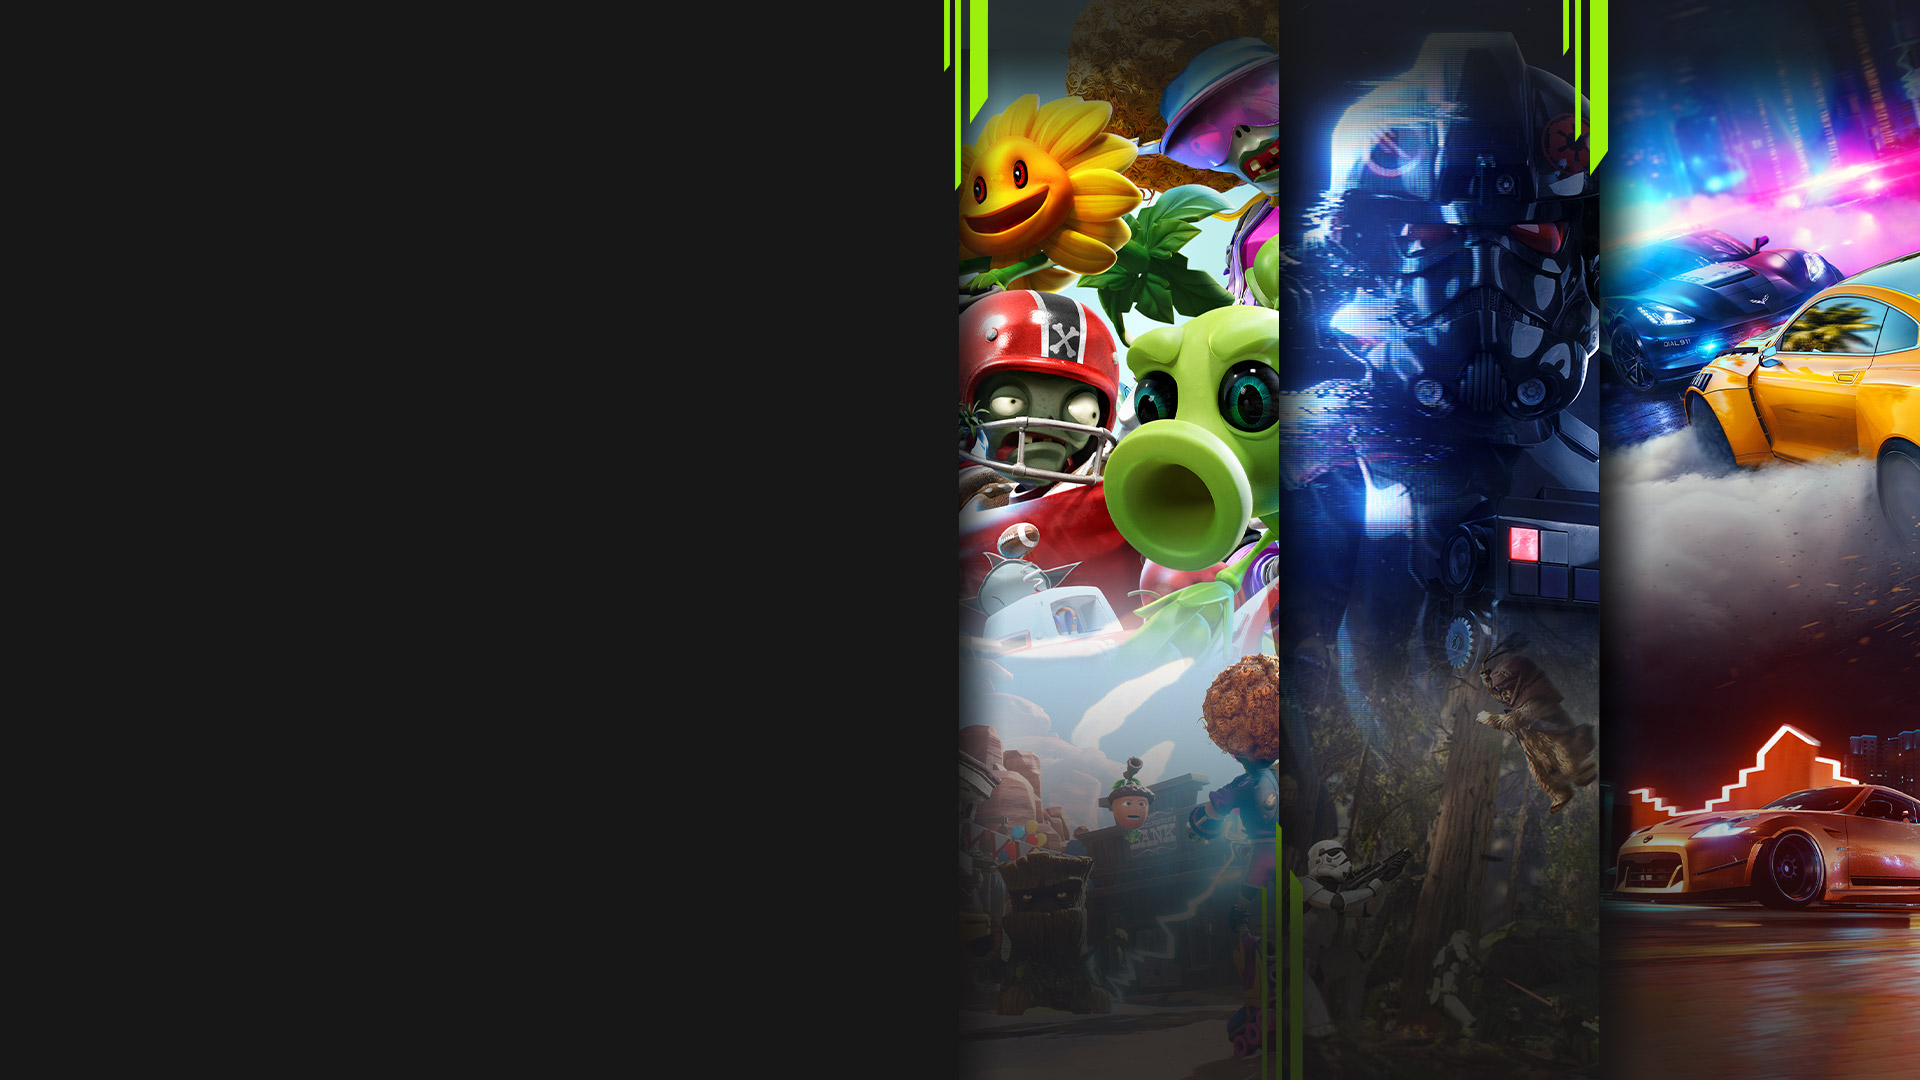 Game art from multiple EA games including Plants vs. Zombies: Battle for Neighborville, Star Wars Battlefront II, and Need for Speed Heat.